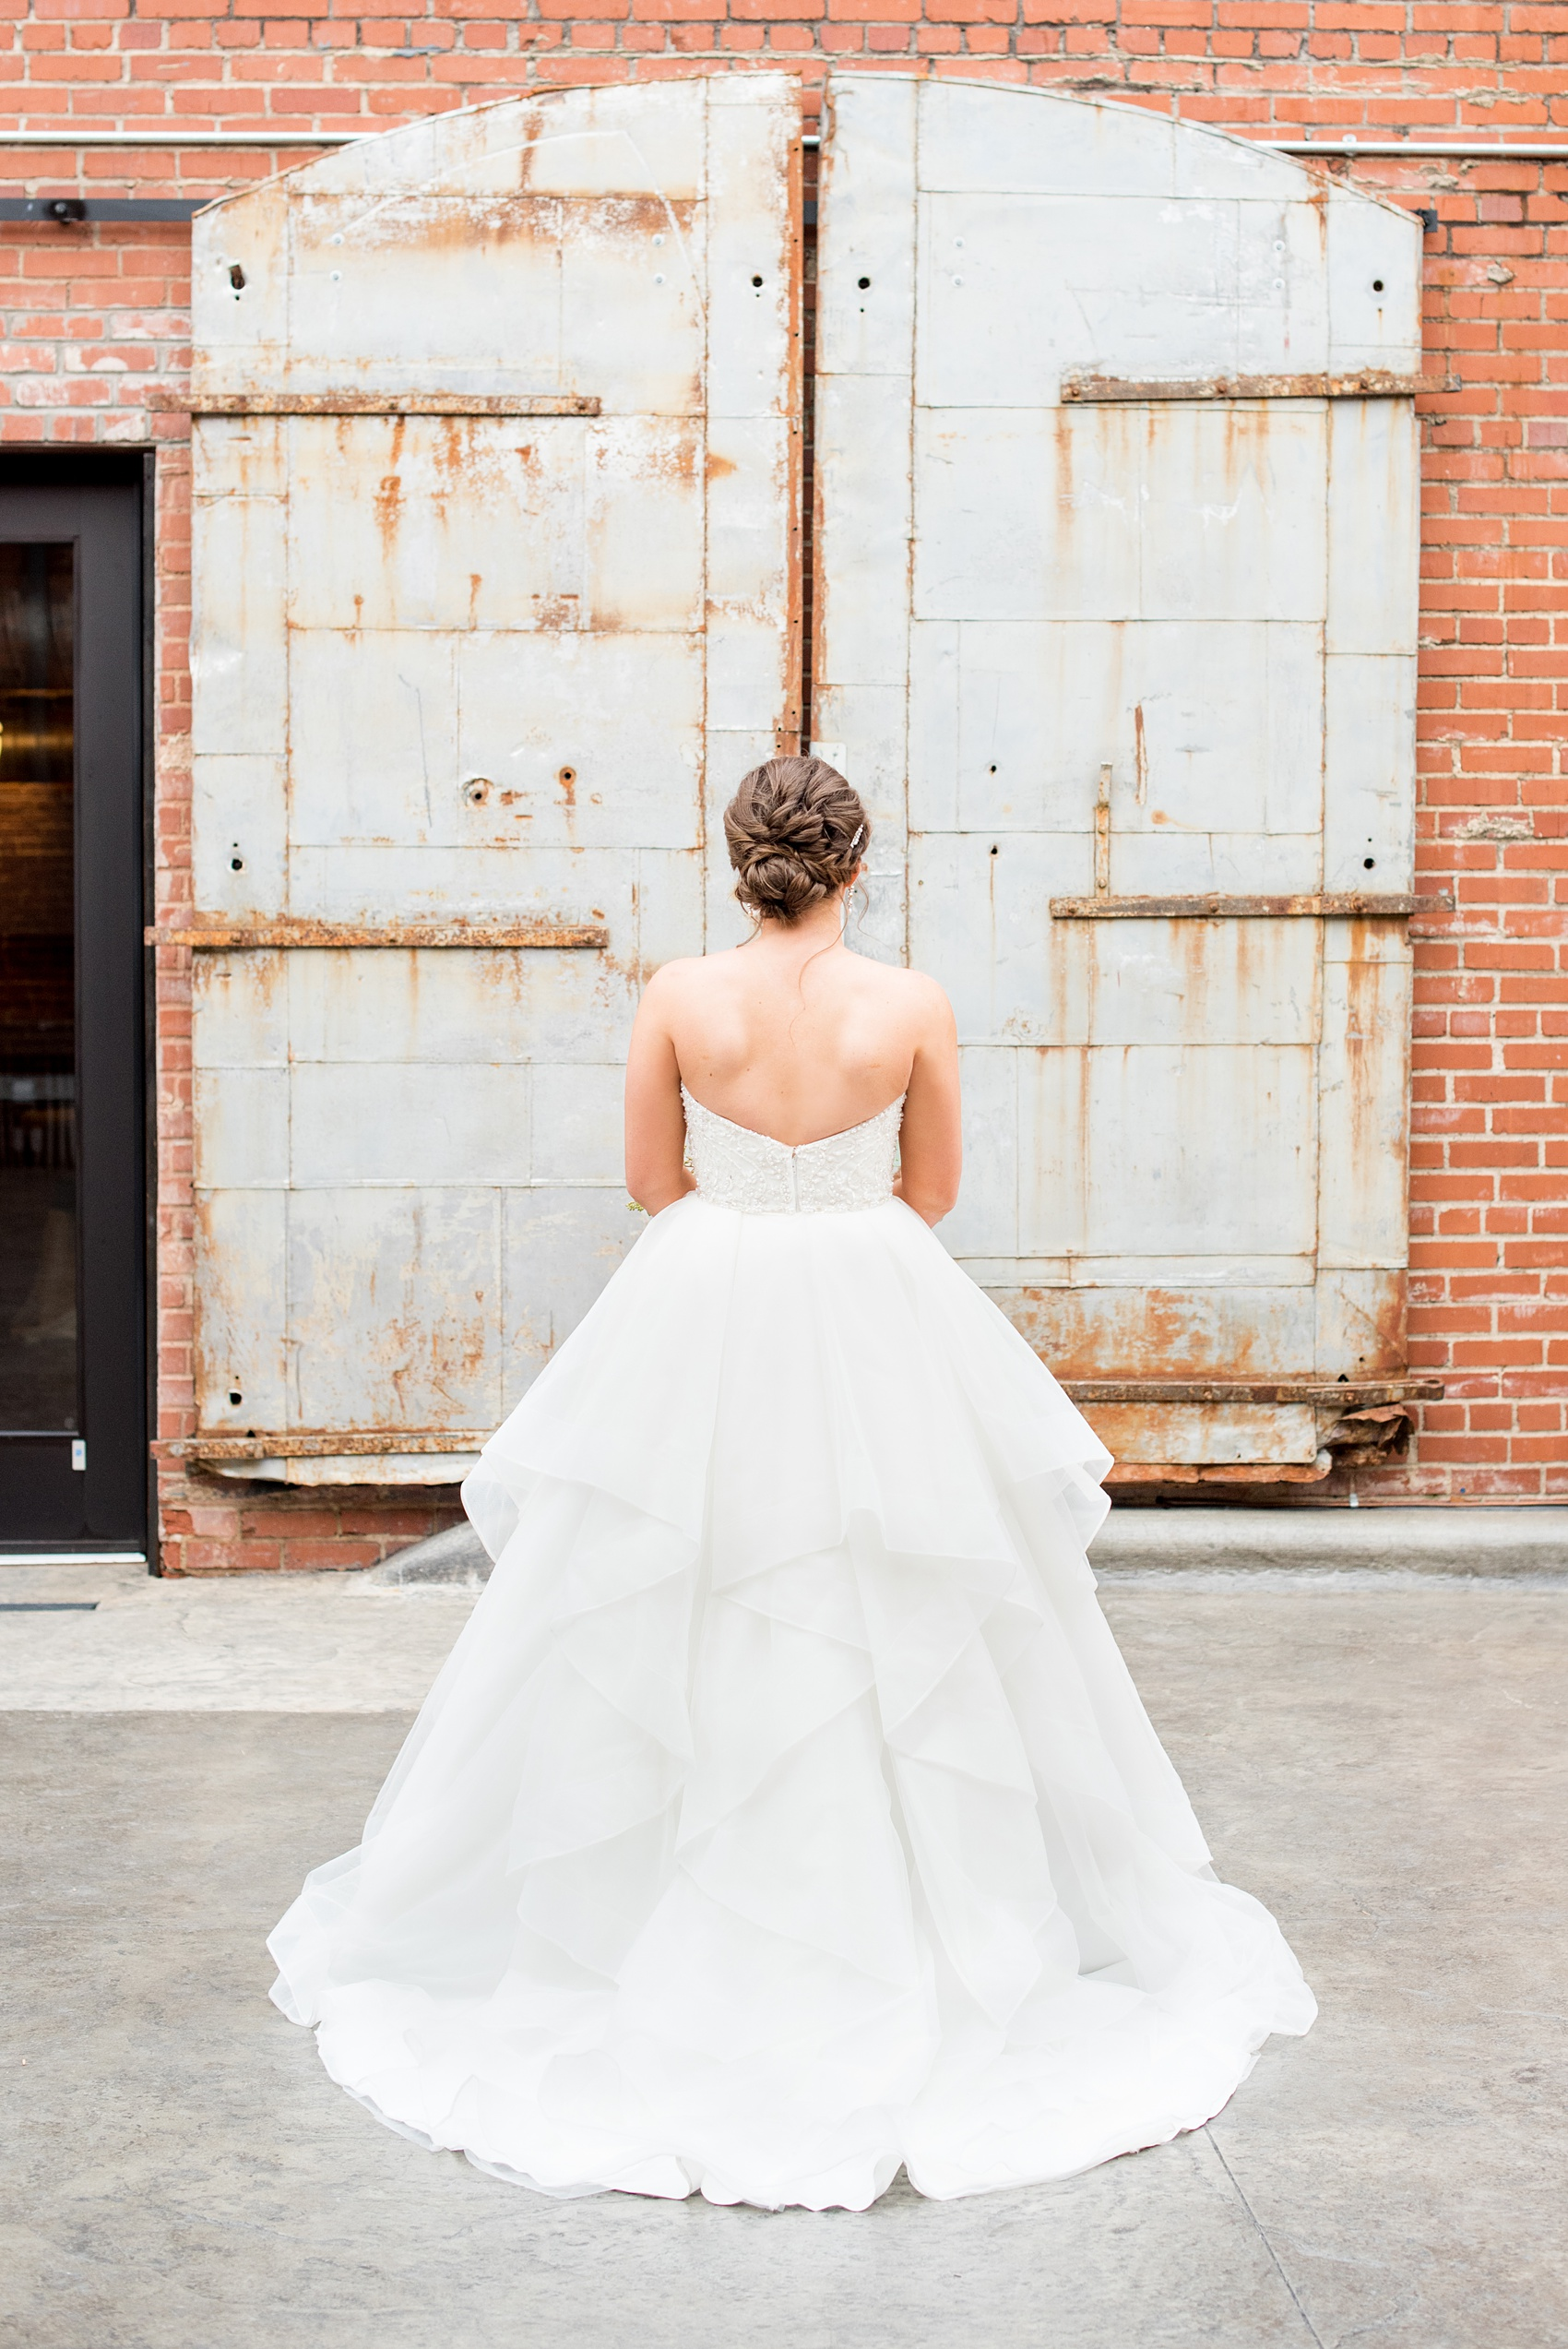 Durham wedding photos at The Cookery by Mikkel Paige Photography in North Carolina. The bride wore a strapless gown, had her hair in an up-do, and had many layers in her tulle skirt.